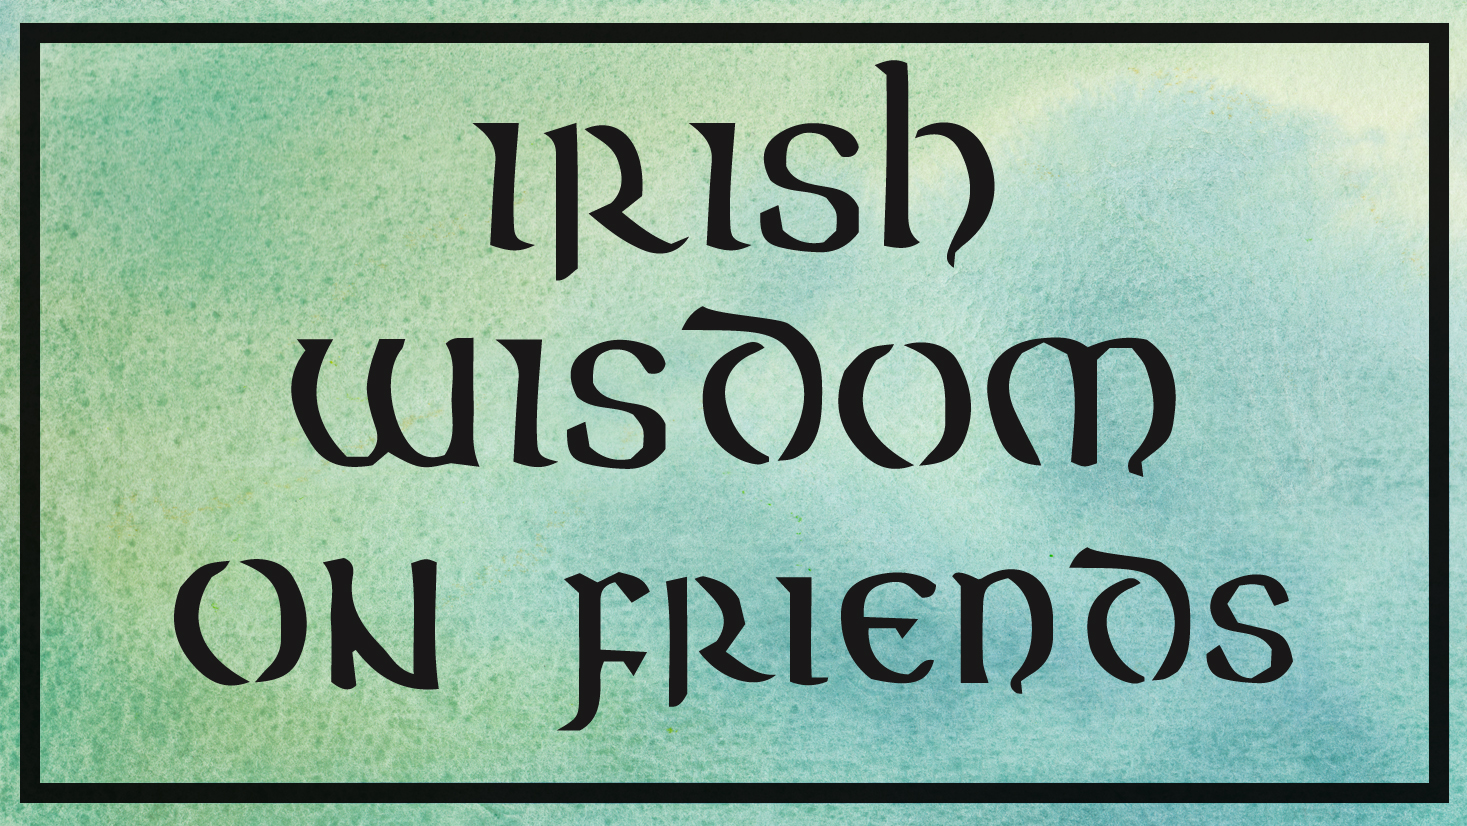 Irish wisdom on friends